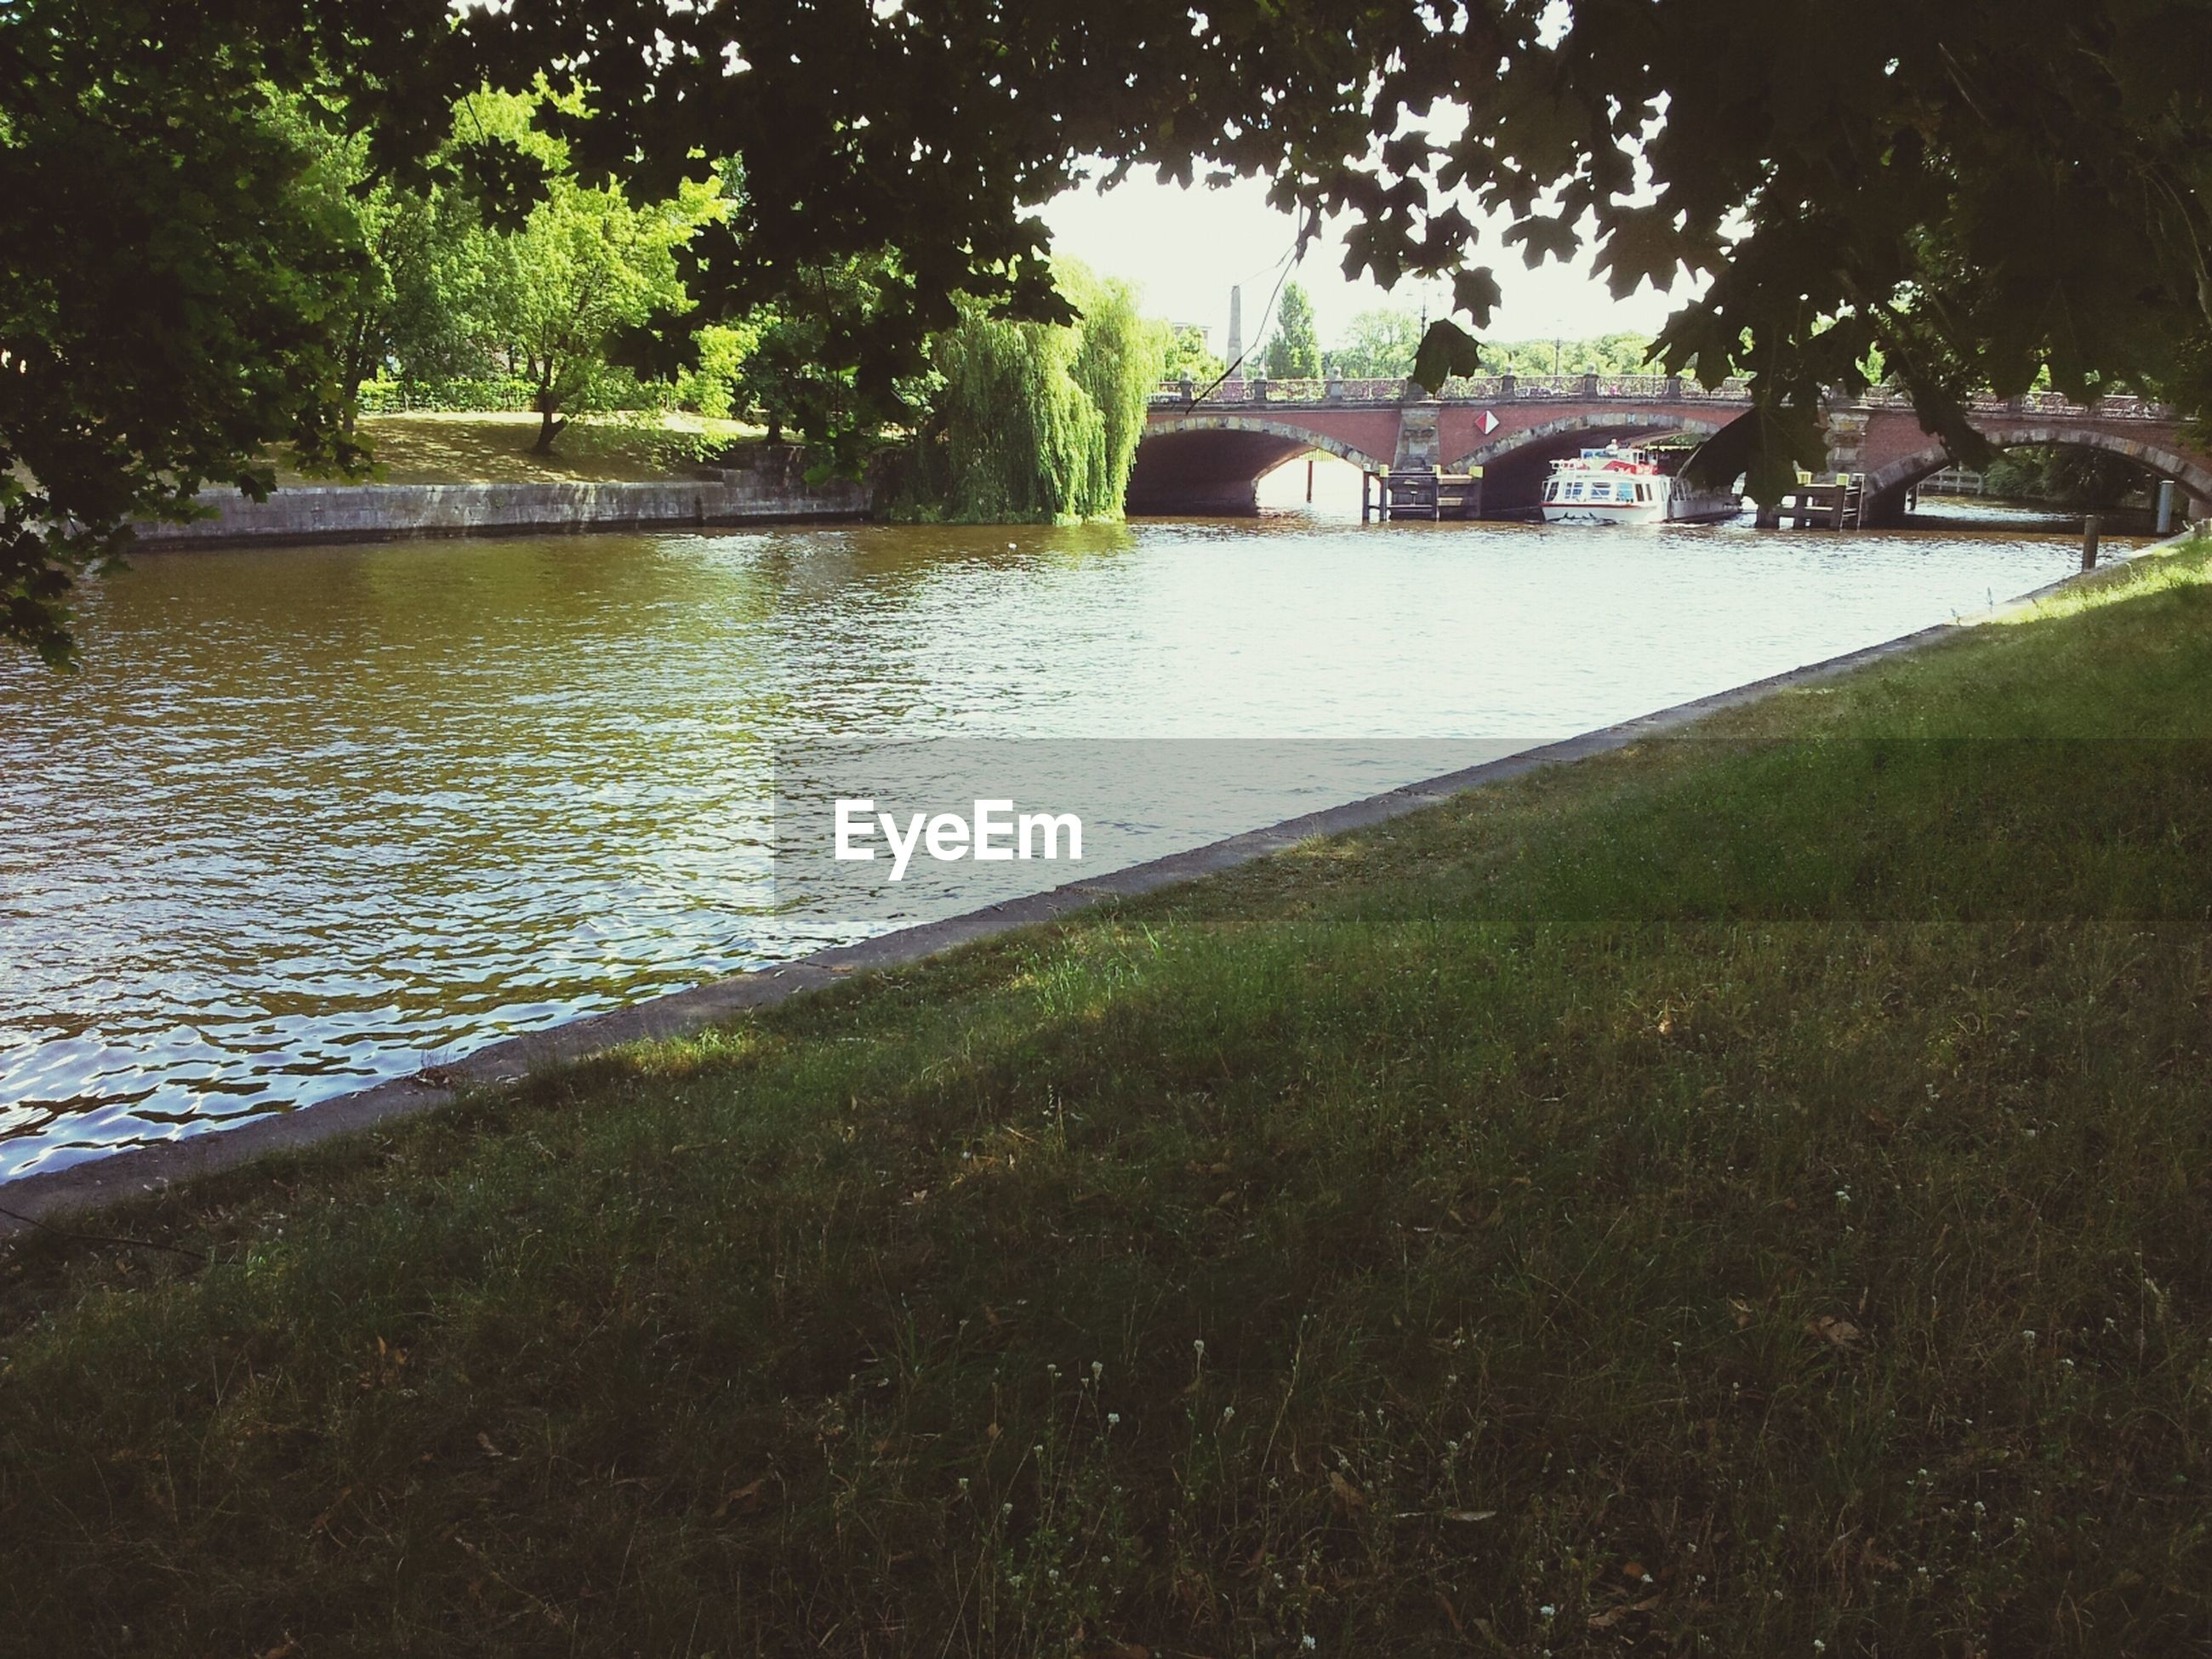 water, grass, tree, built structure, river, park - man made space, architecture, lake, reflection, nature, pond, tranquility, green color, growth, outdoors, day, riverbank, plant, building exterior, no people